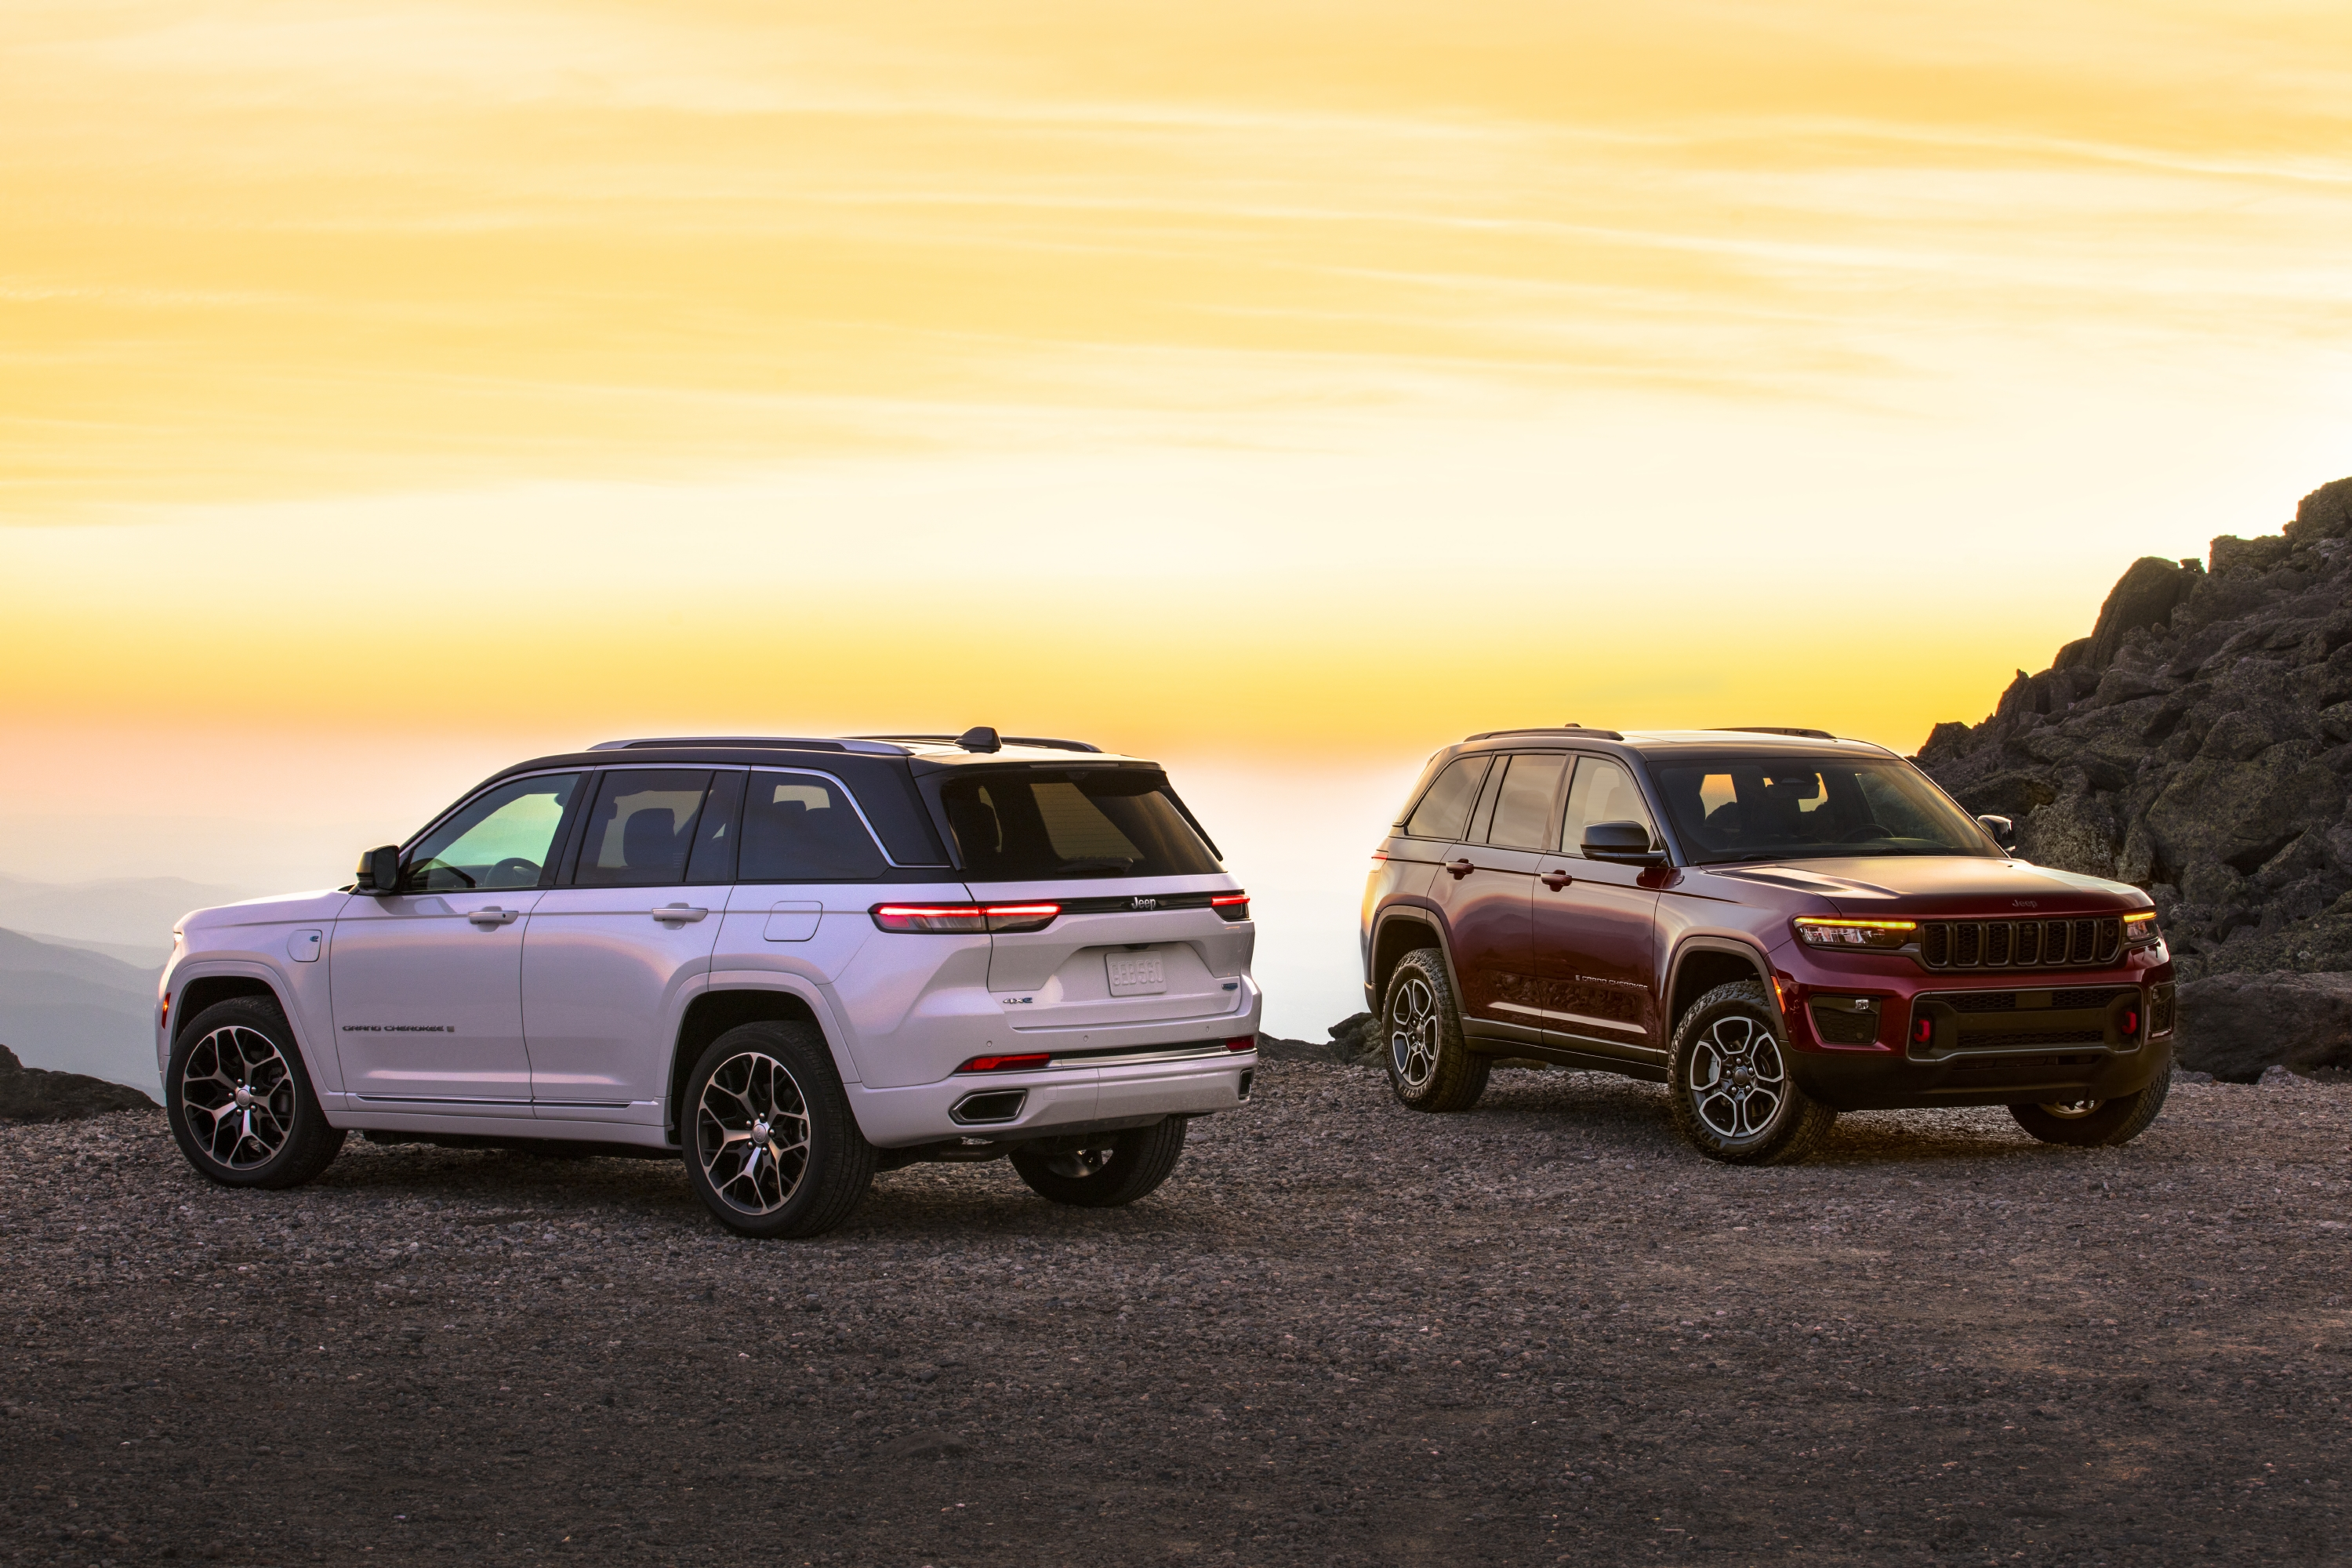 All-new 2022 Jeep® Grand Cherokee Summit 4xe (left) and 2022 Jee